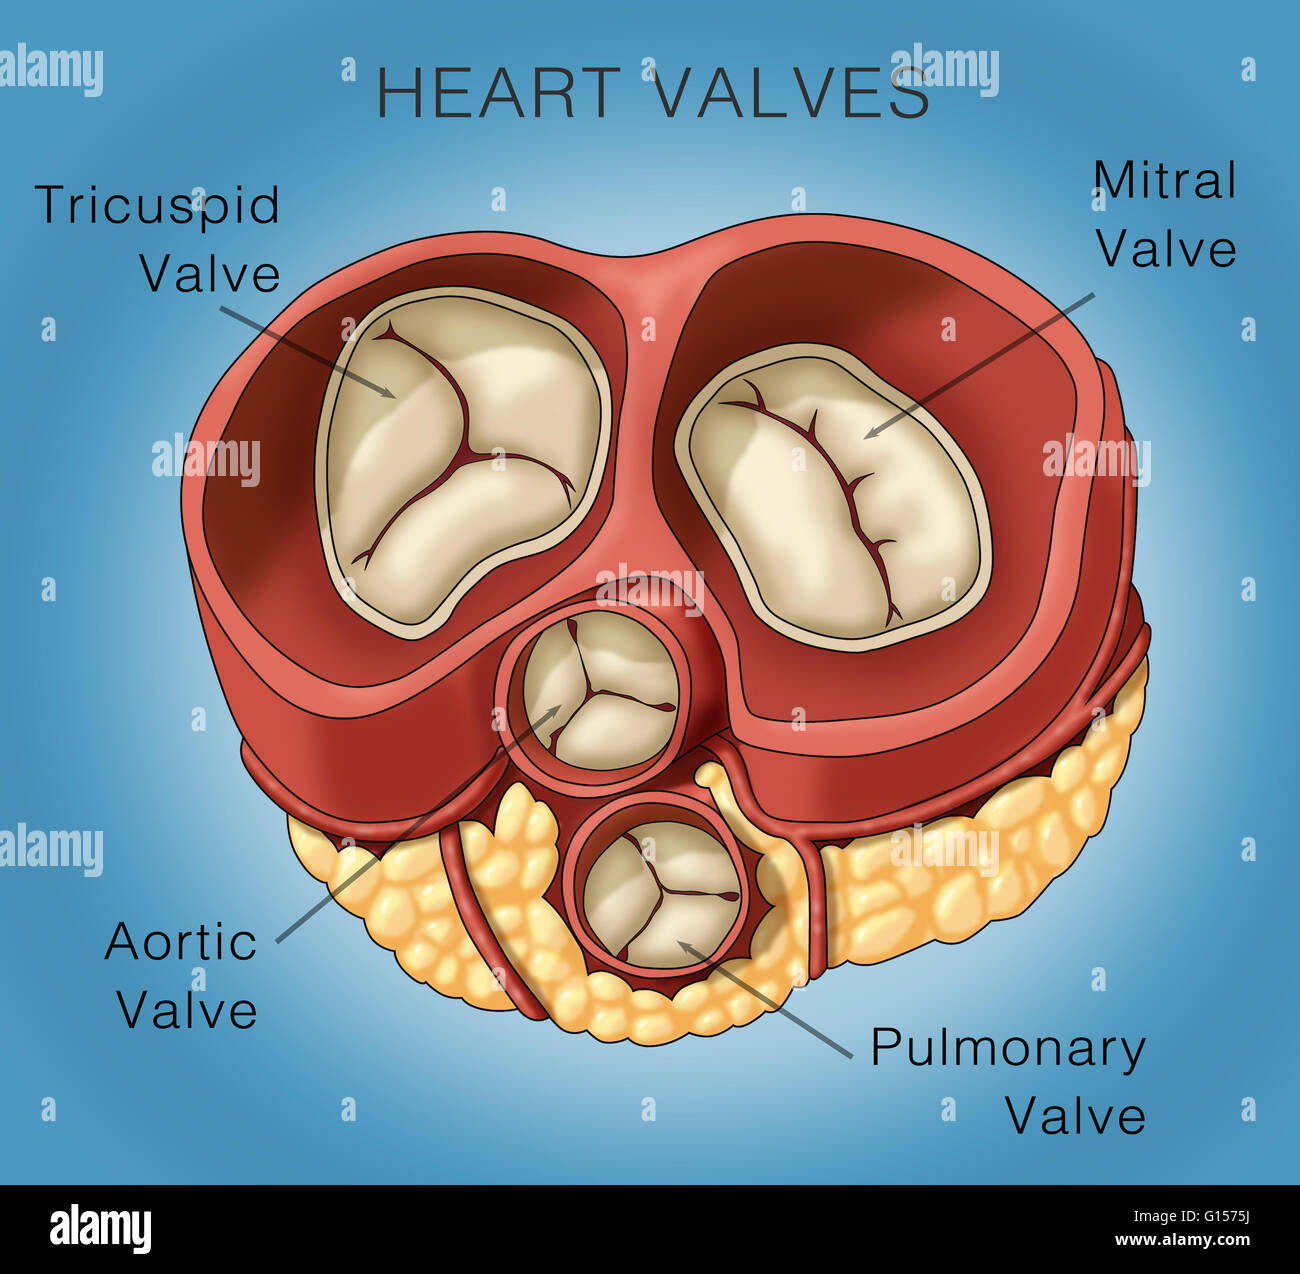 Mitral Stockfotos & Mitral Bilder - Alamy